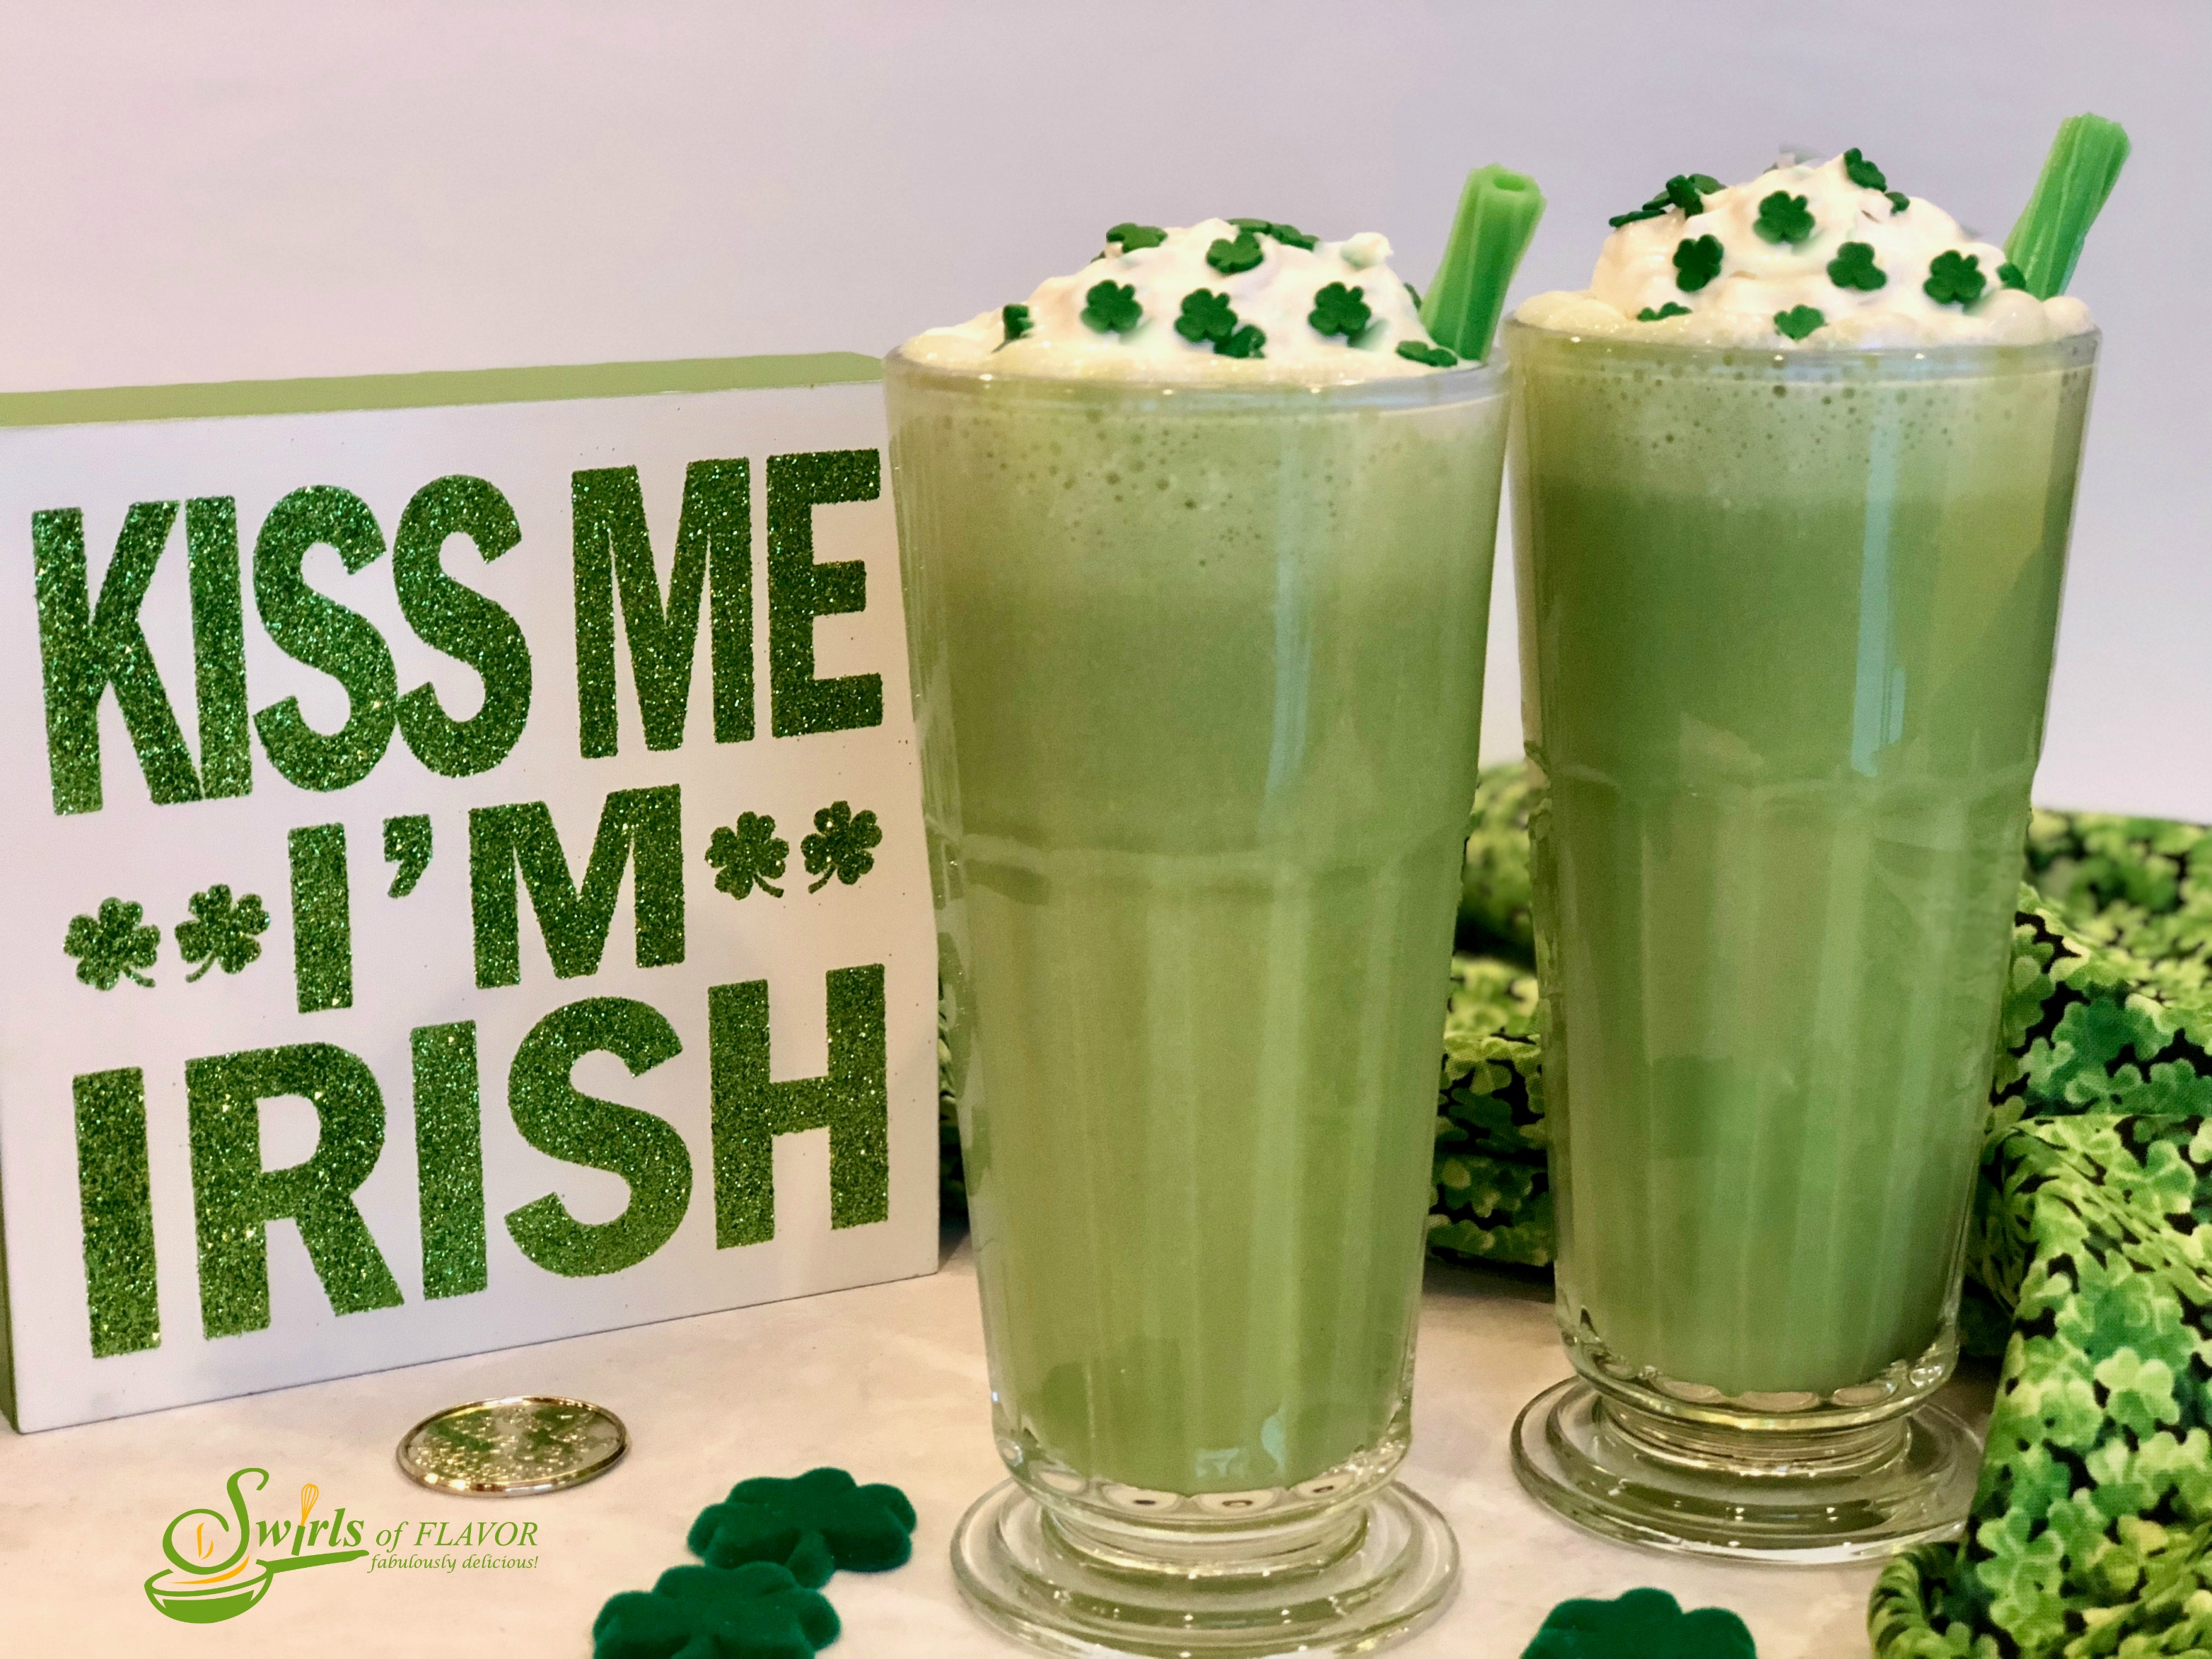 Shamrock Shake Shooters, made with vanilla ice cream, Irish Whiskey, mint flavoring and tinted green, are sure to be the hit of your Saint Patrick's Day! shakes | shamrock shake | ice cream | mint | Irish Whiskey | easy | recipe | drink | cocktail | Saint Patrick's Day | party